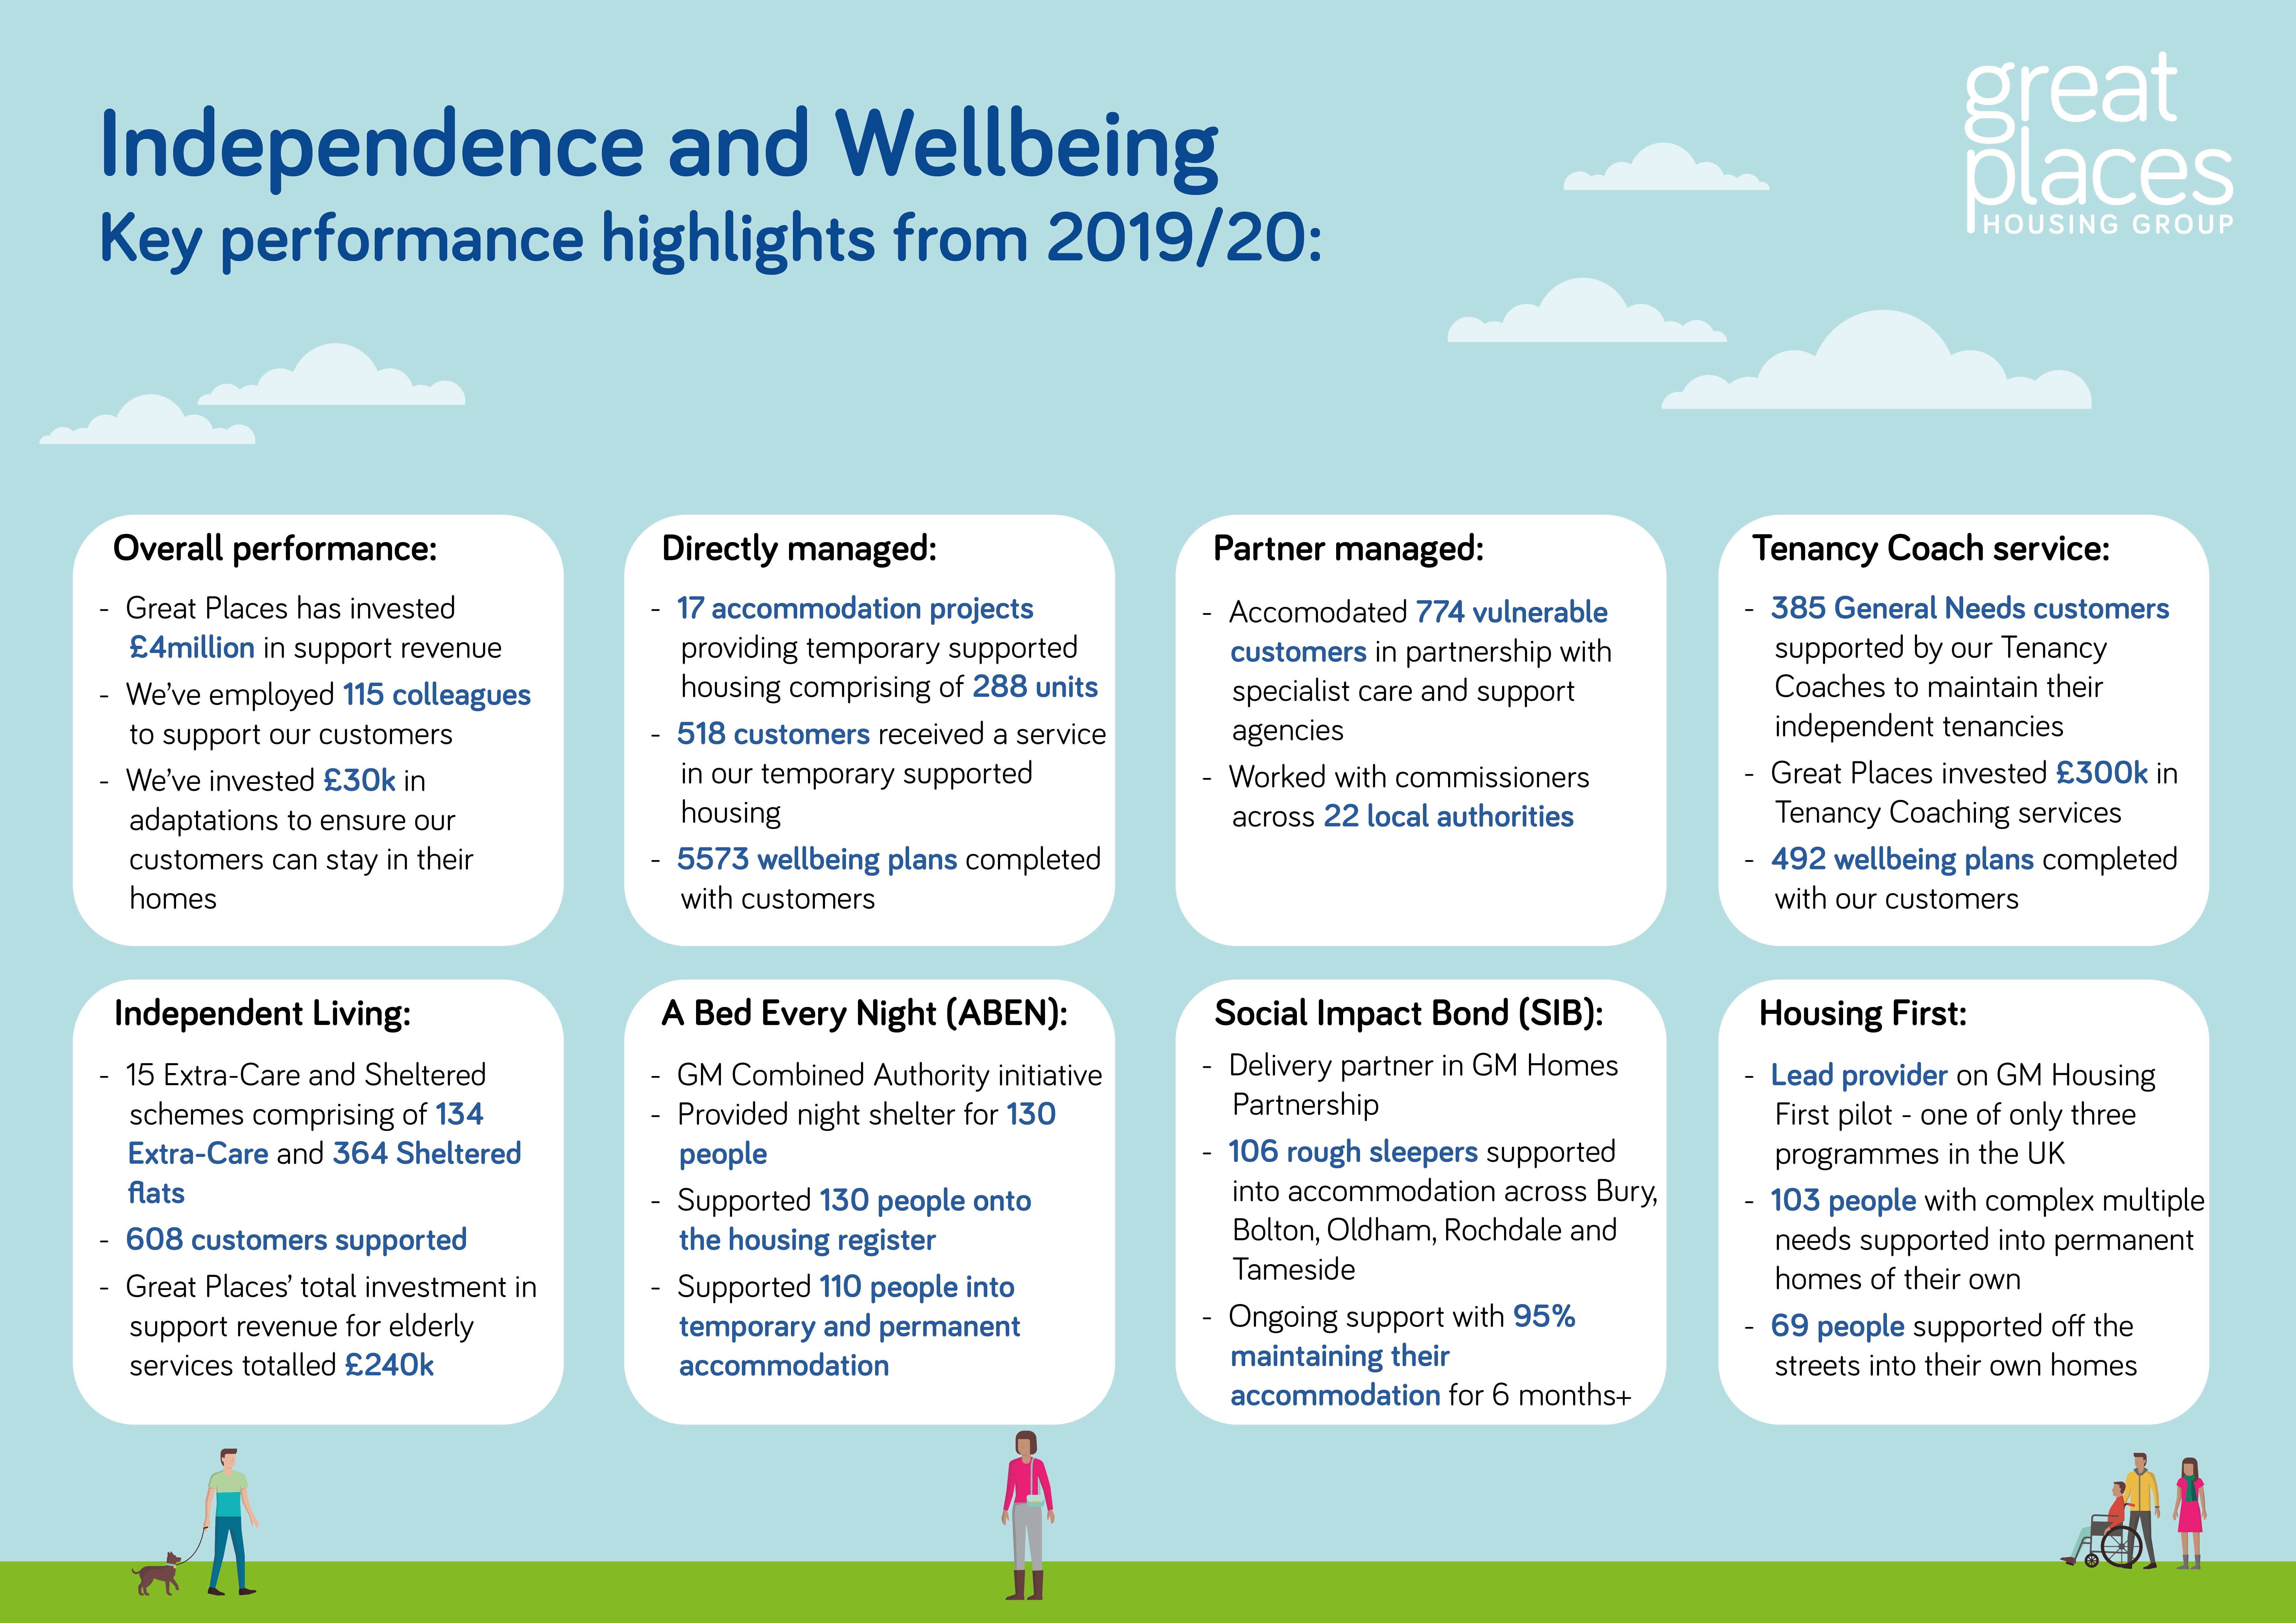 Independence and Wellbeing performance 19/20 V4